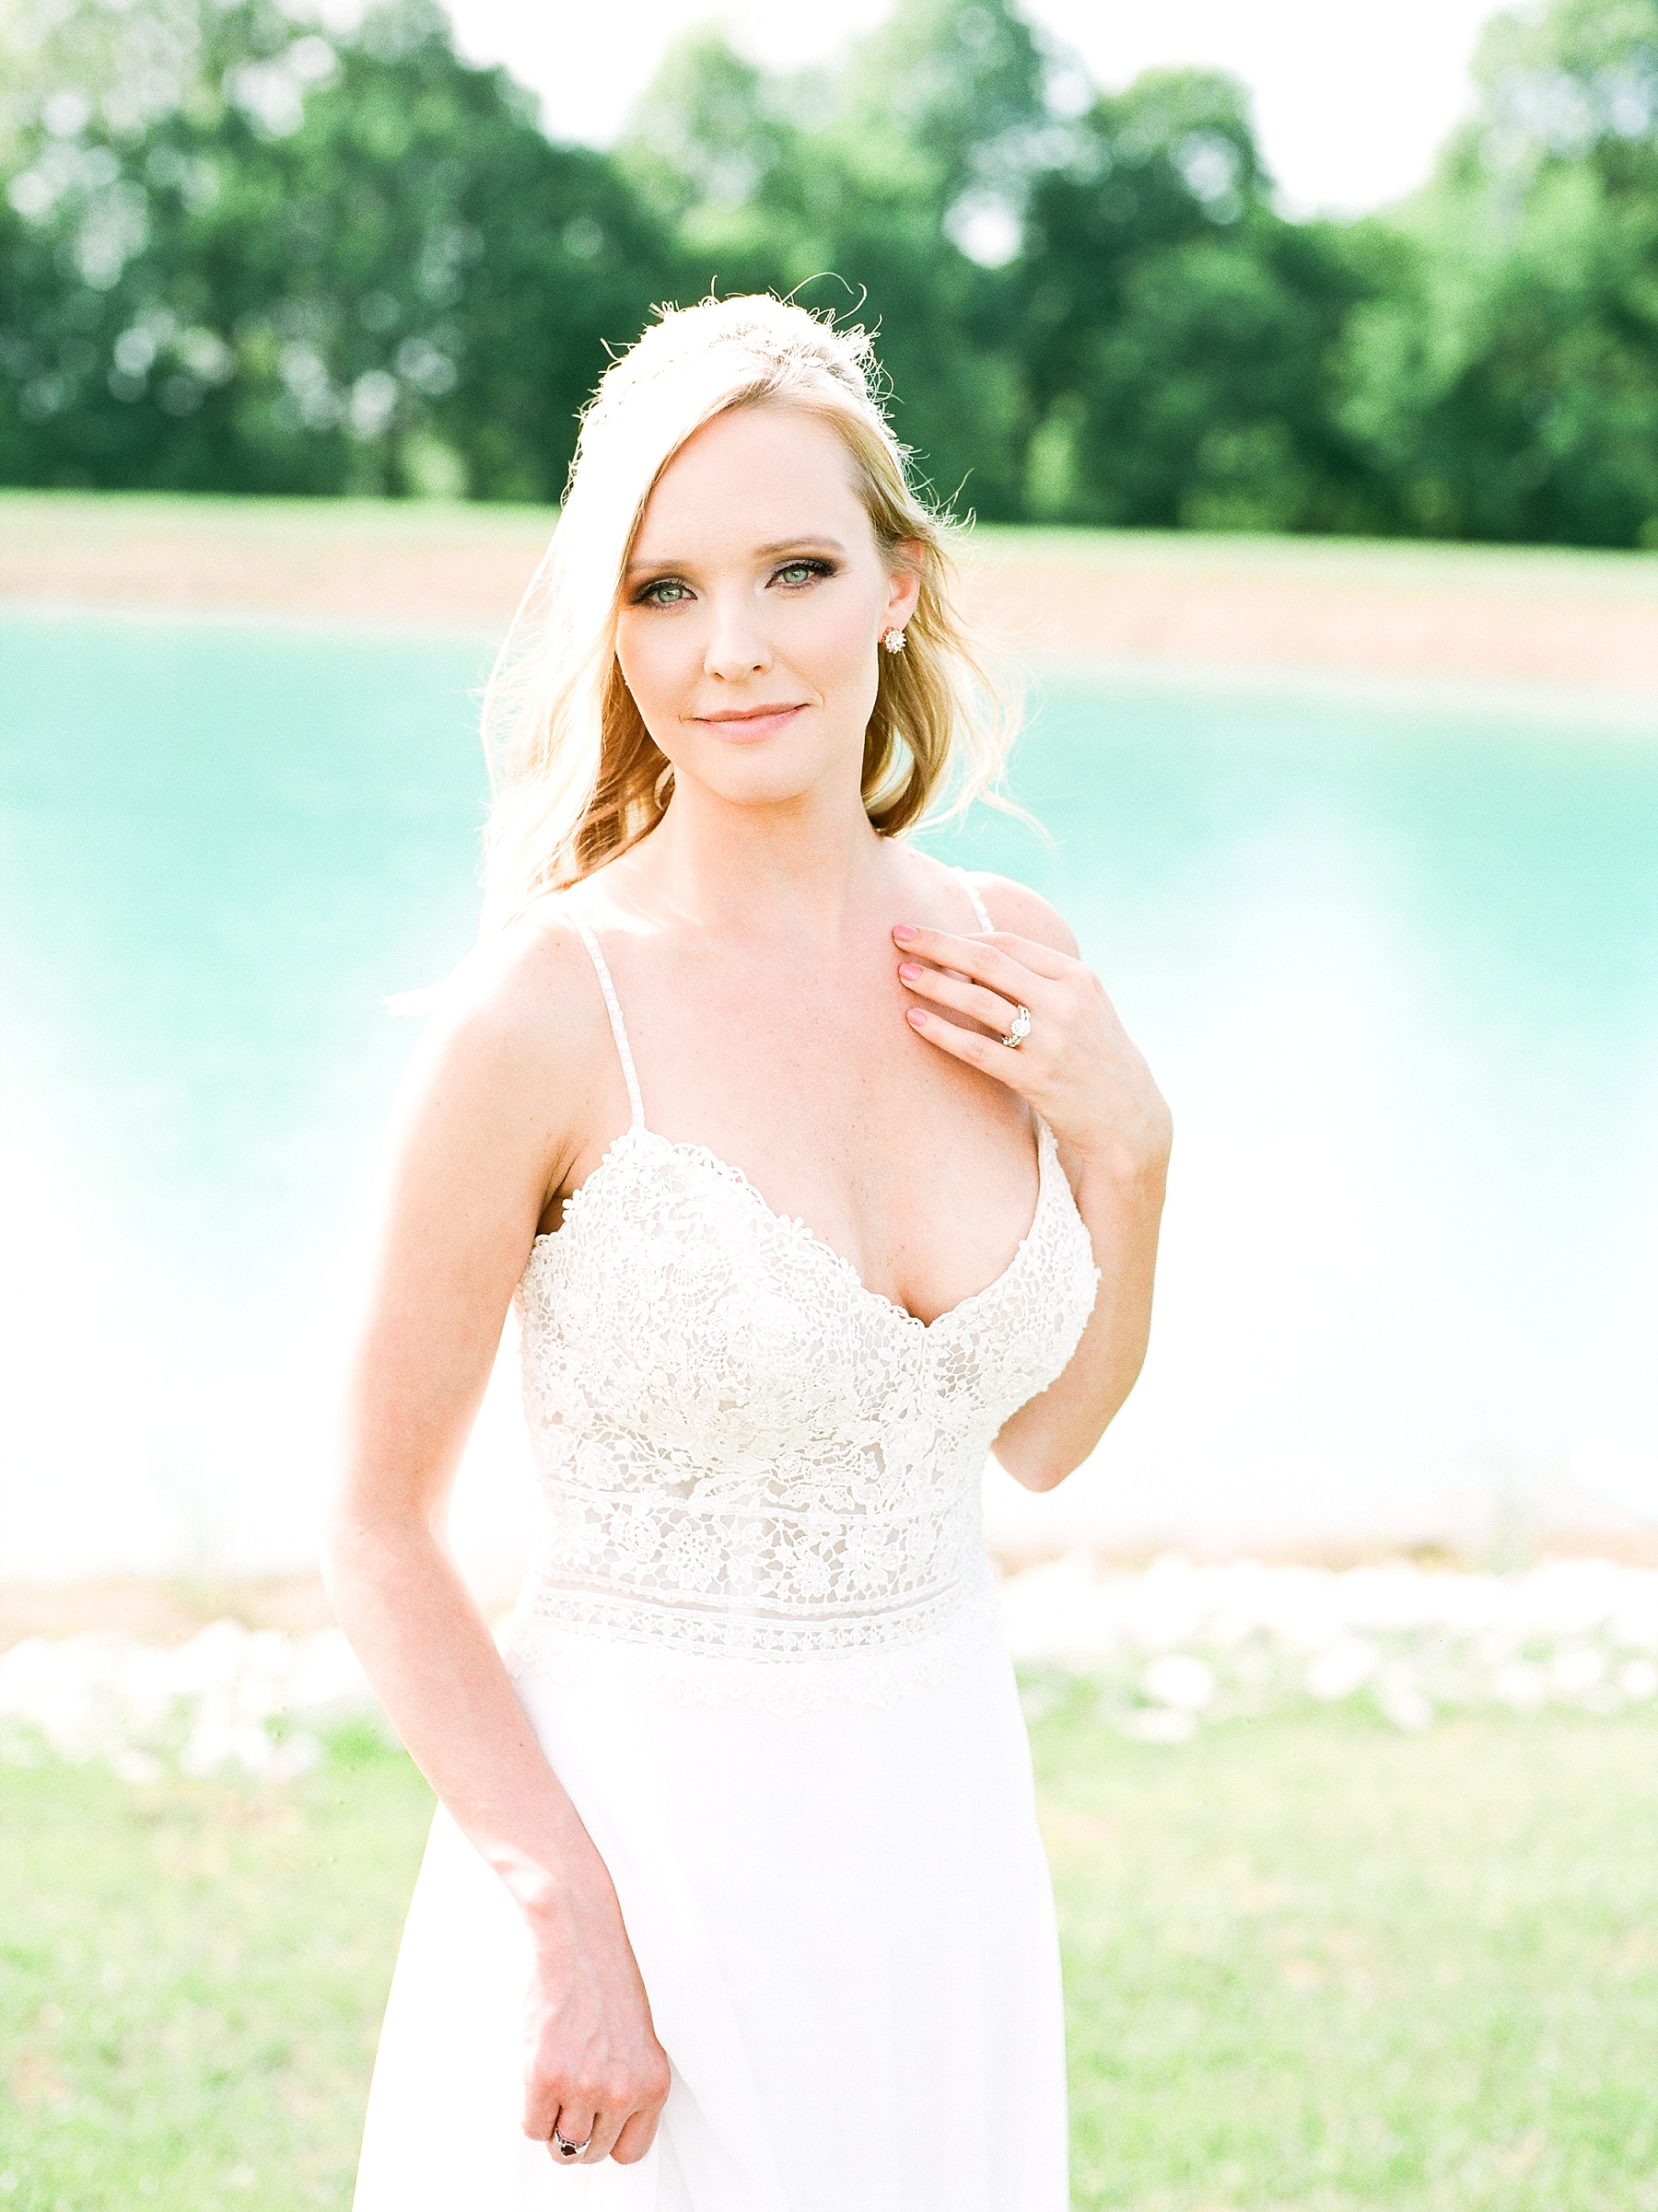 Textural Organic Wedding in All White Venue by Kelsi Kliethermes Wedding Photographer - Missouri, Midwest, and Destinations_0047.jpg